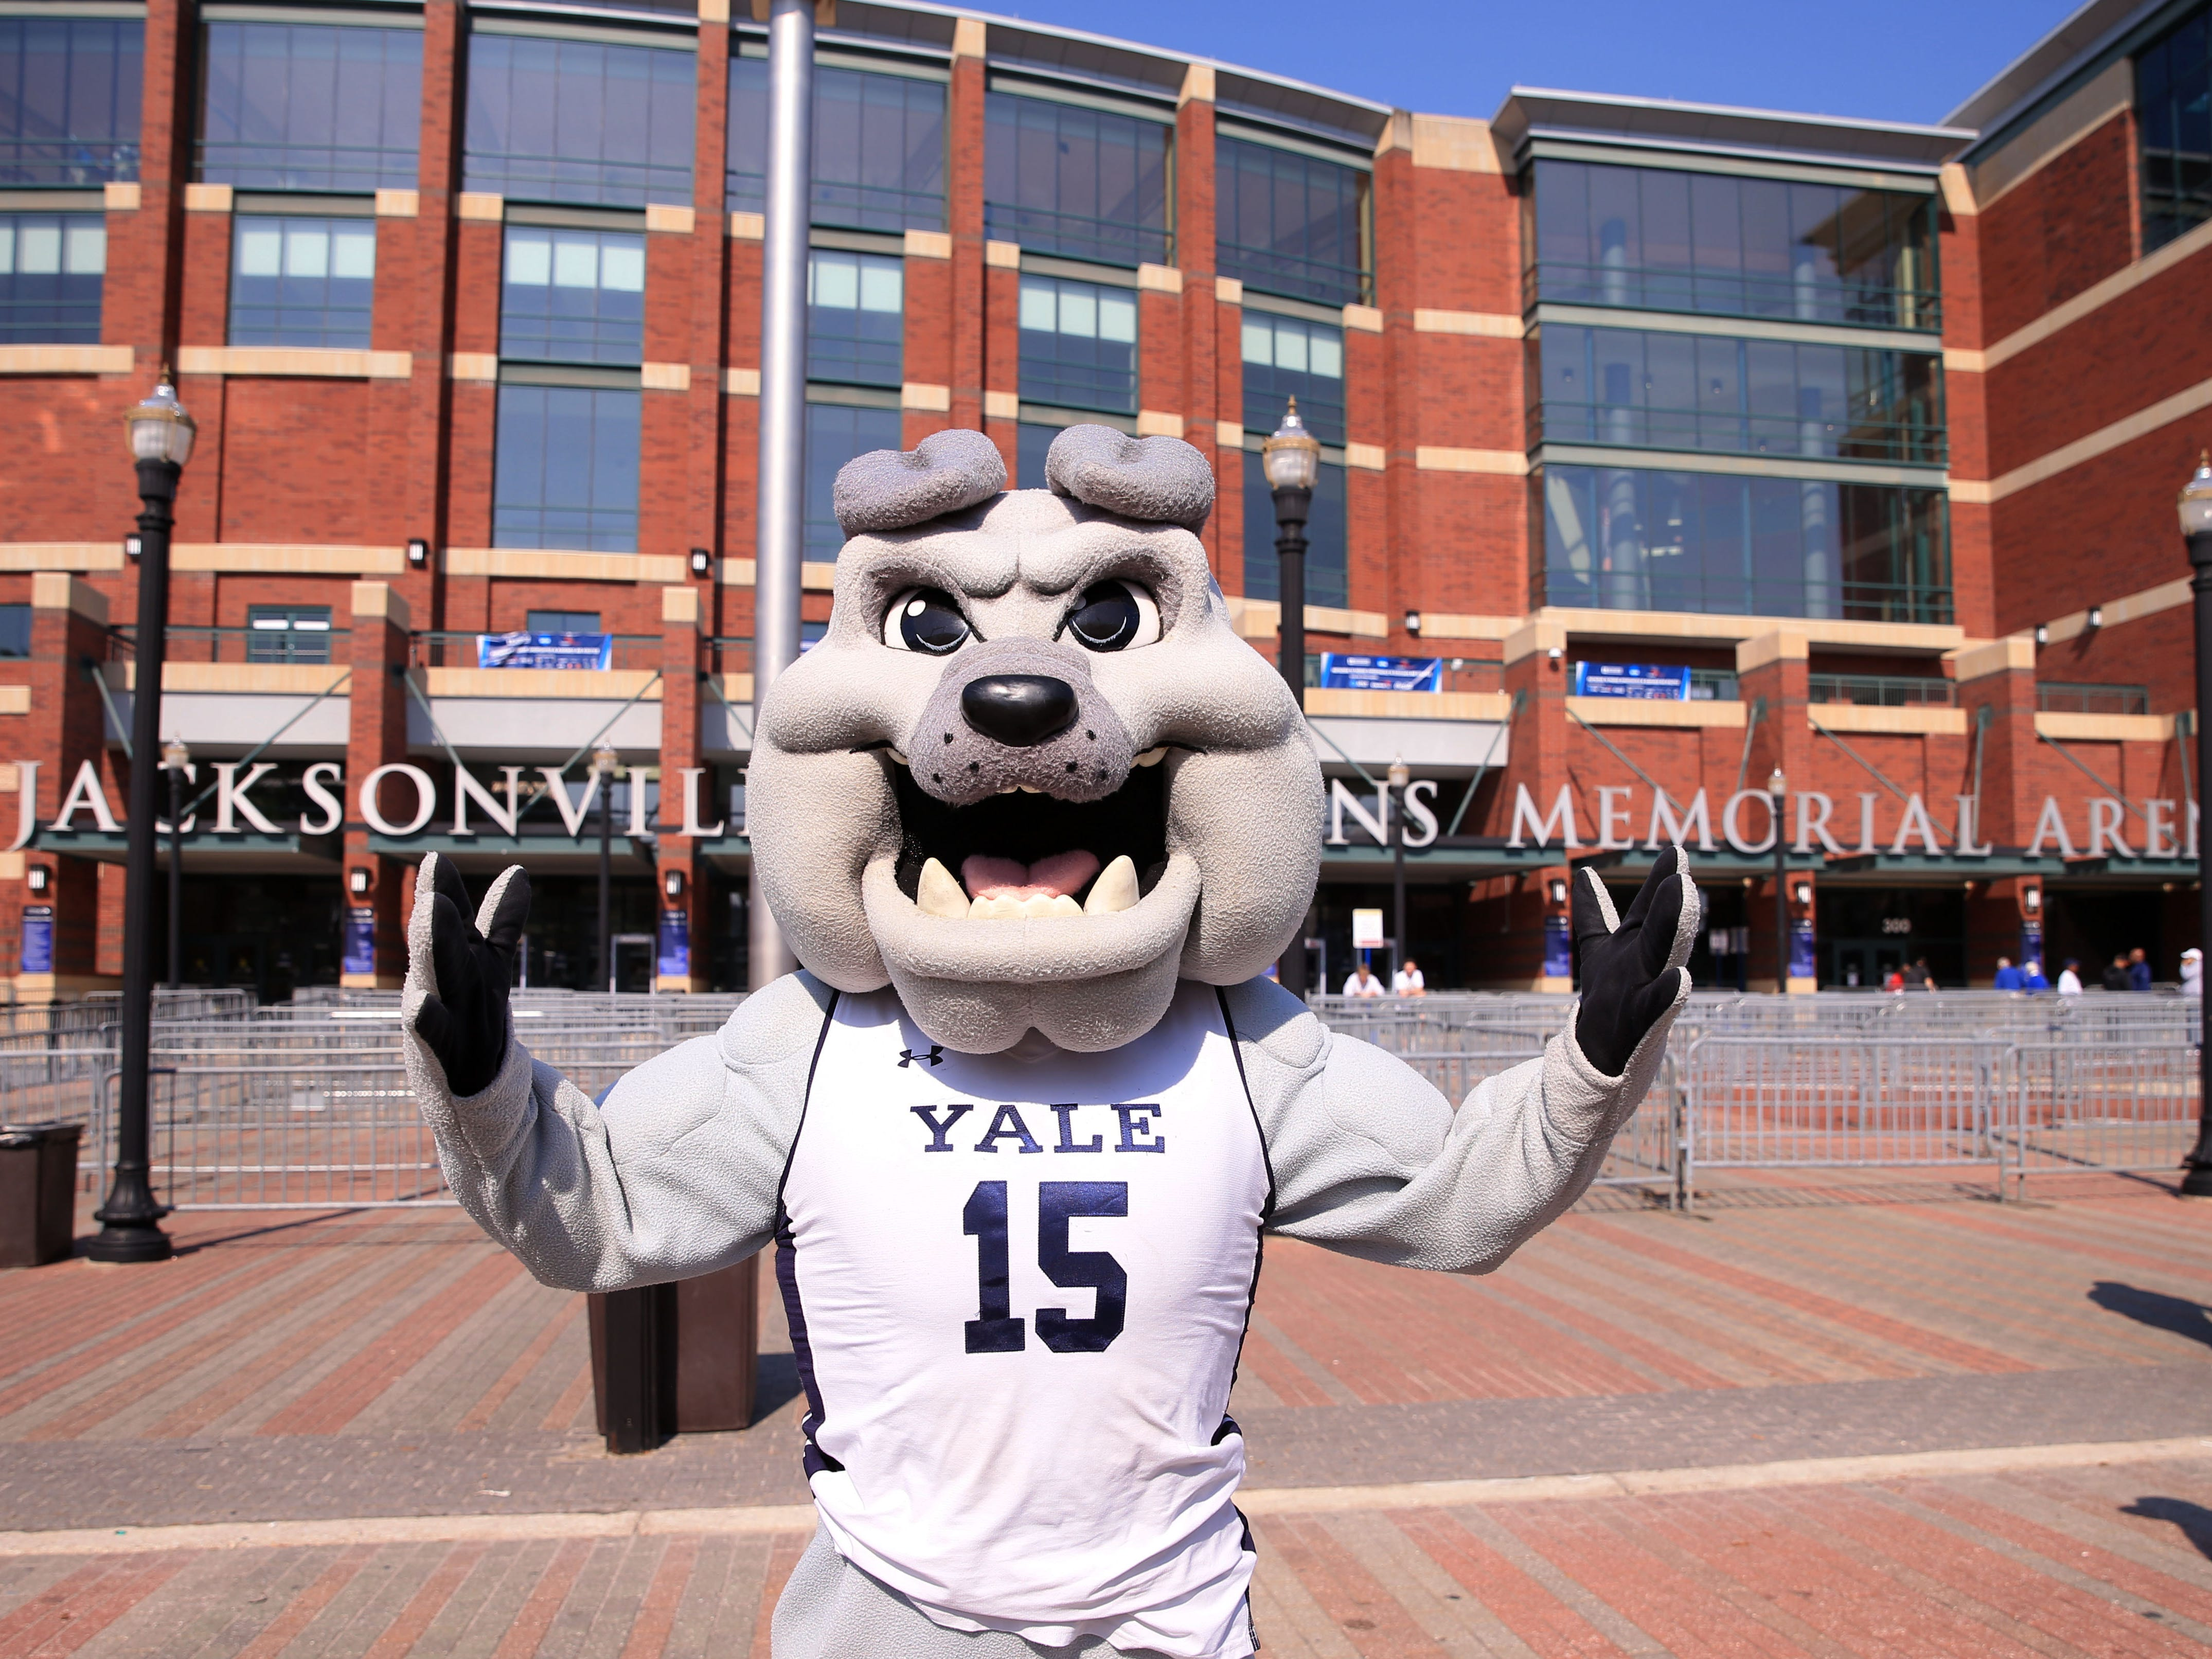 First round: The Yale Bulldogs mascot poses before the game against the LSU Tigers.